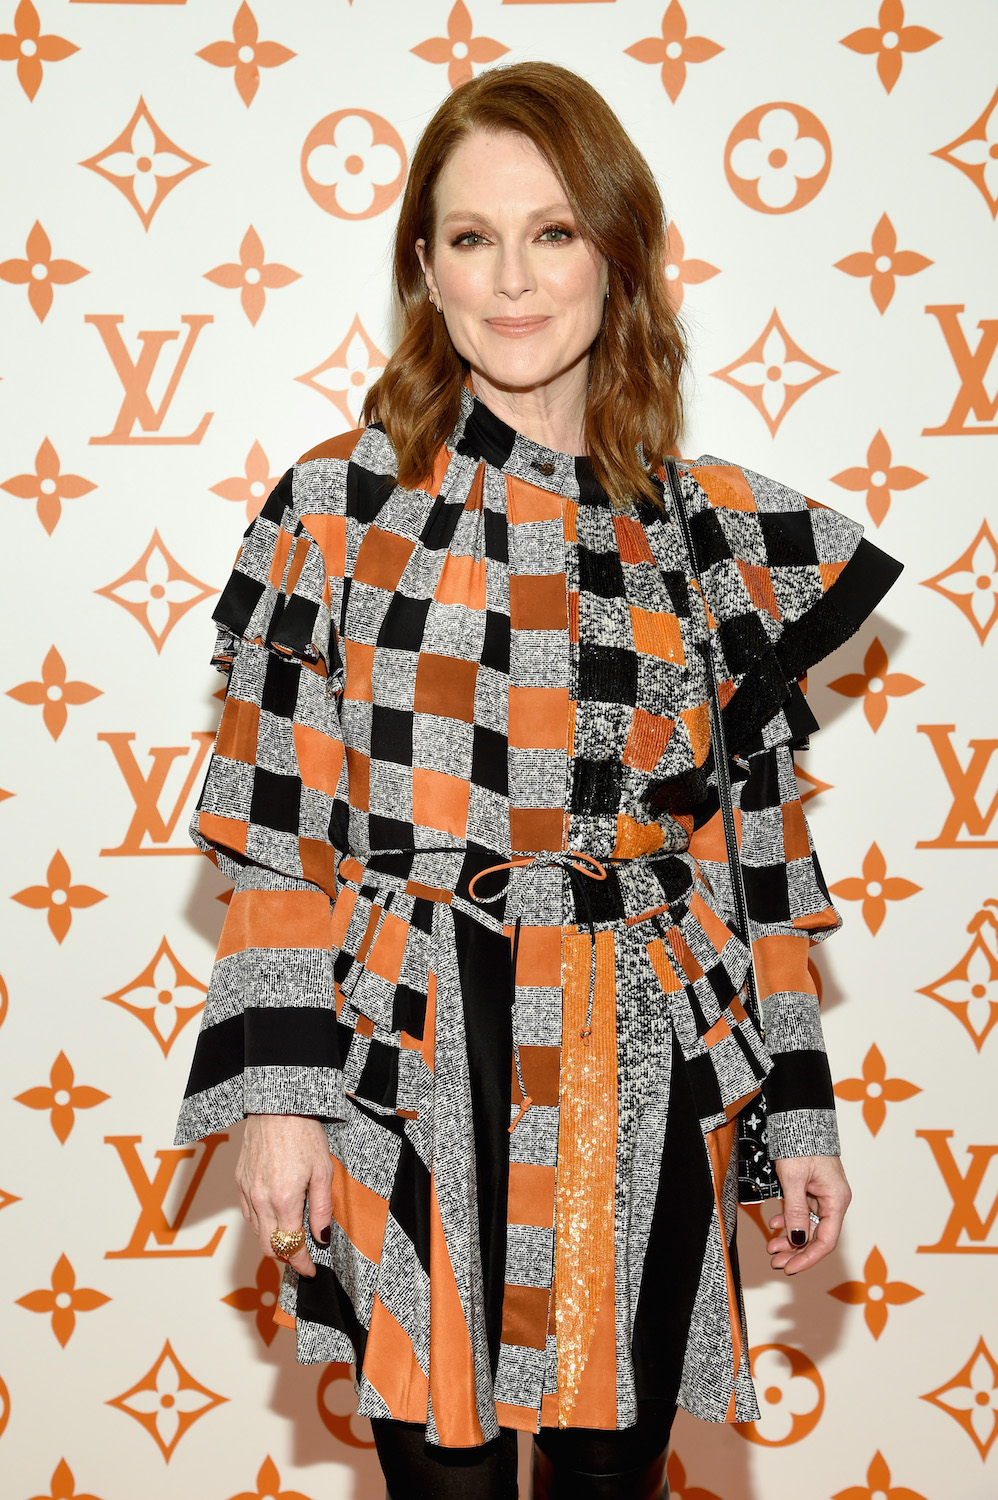 Julianne Moore attends the Louis Vuitton X Grace Coddington Event on October 25, 2018 in New York City.